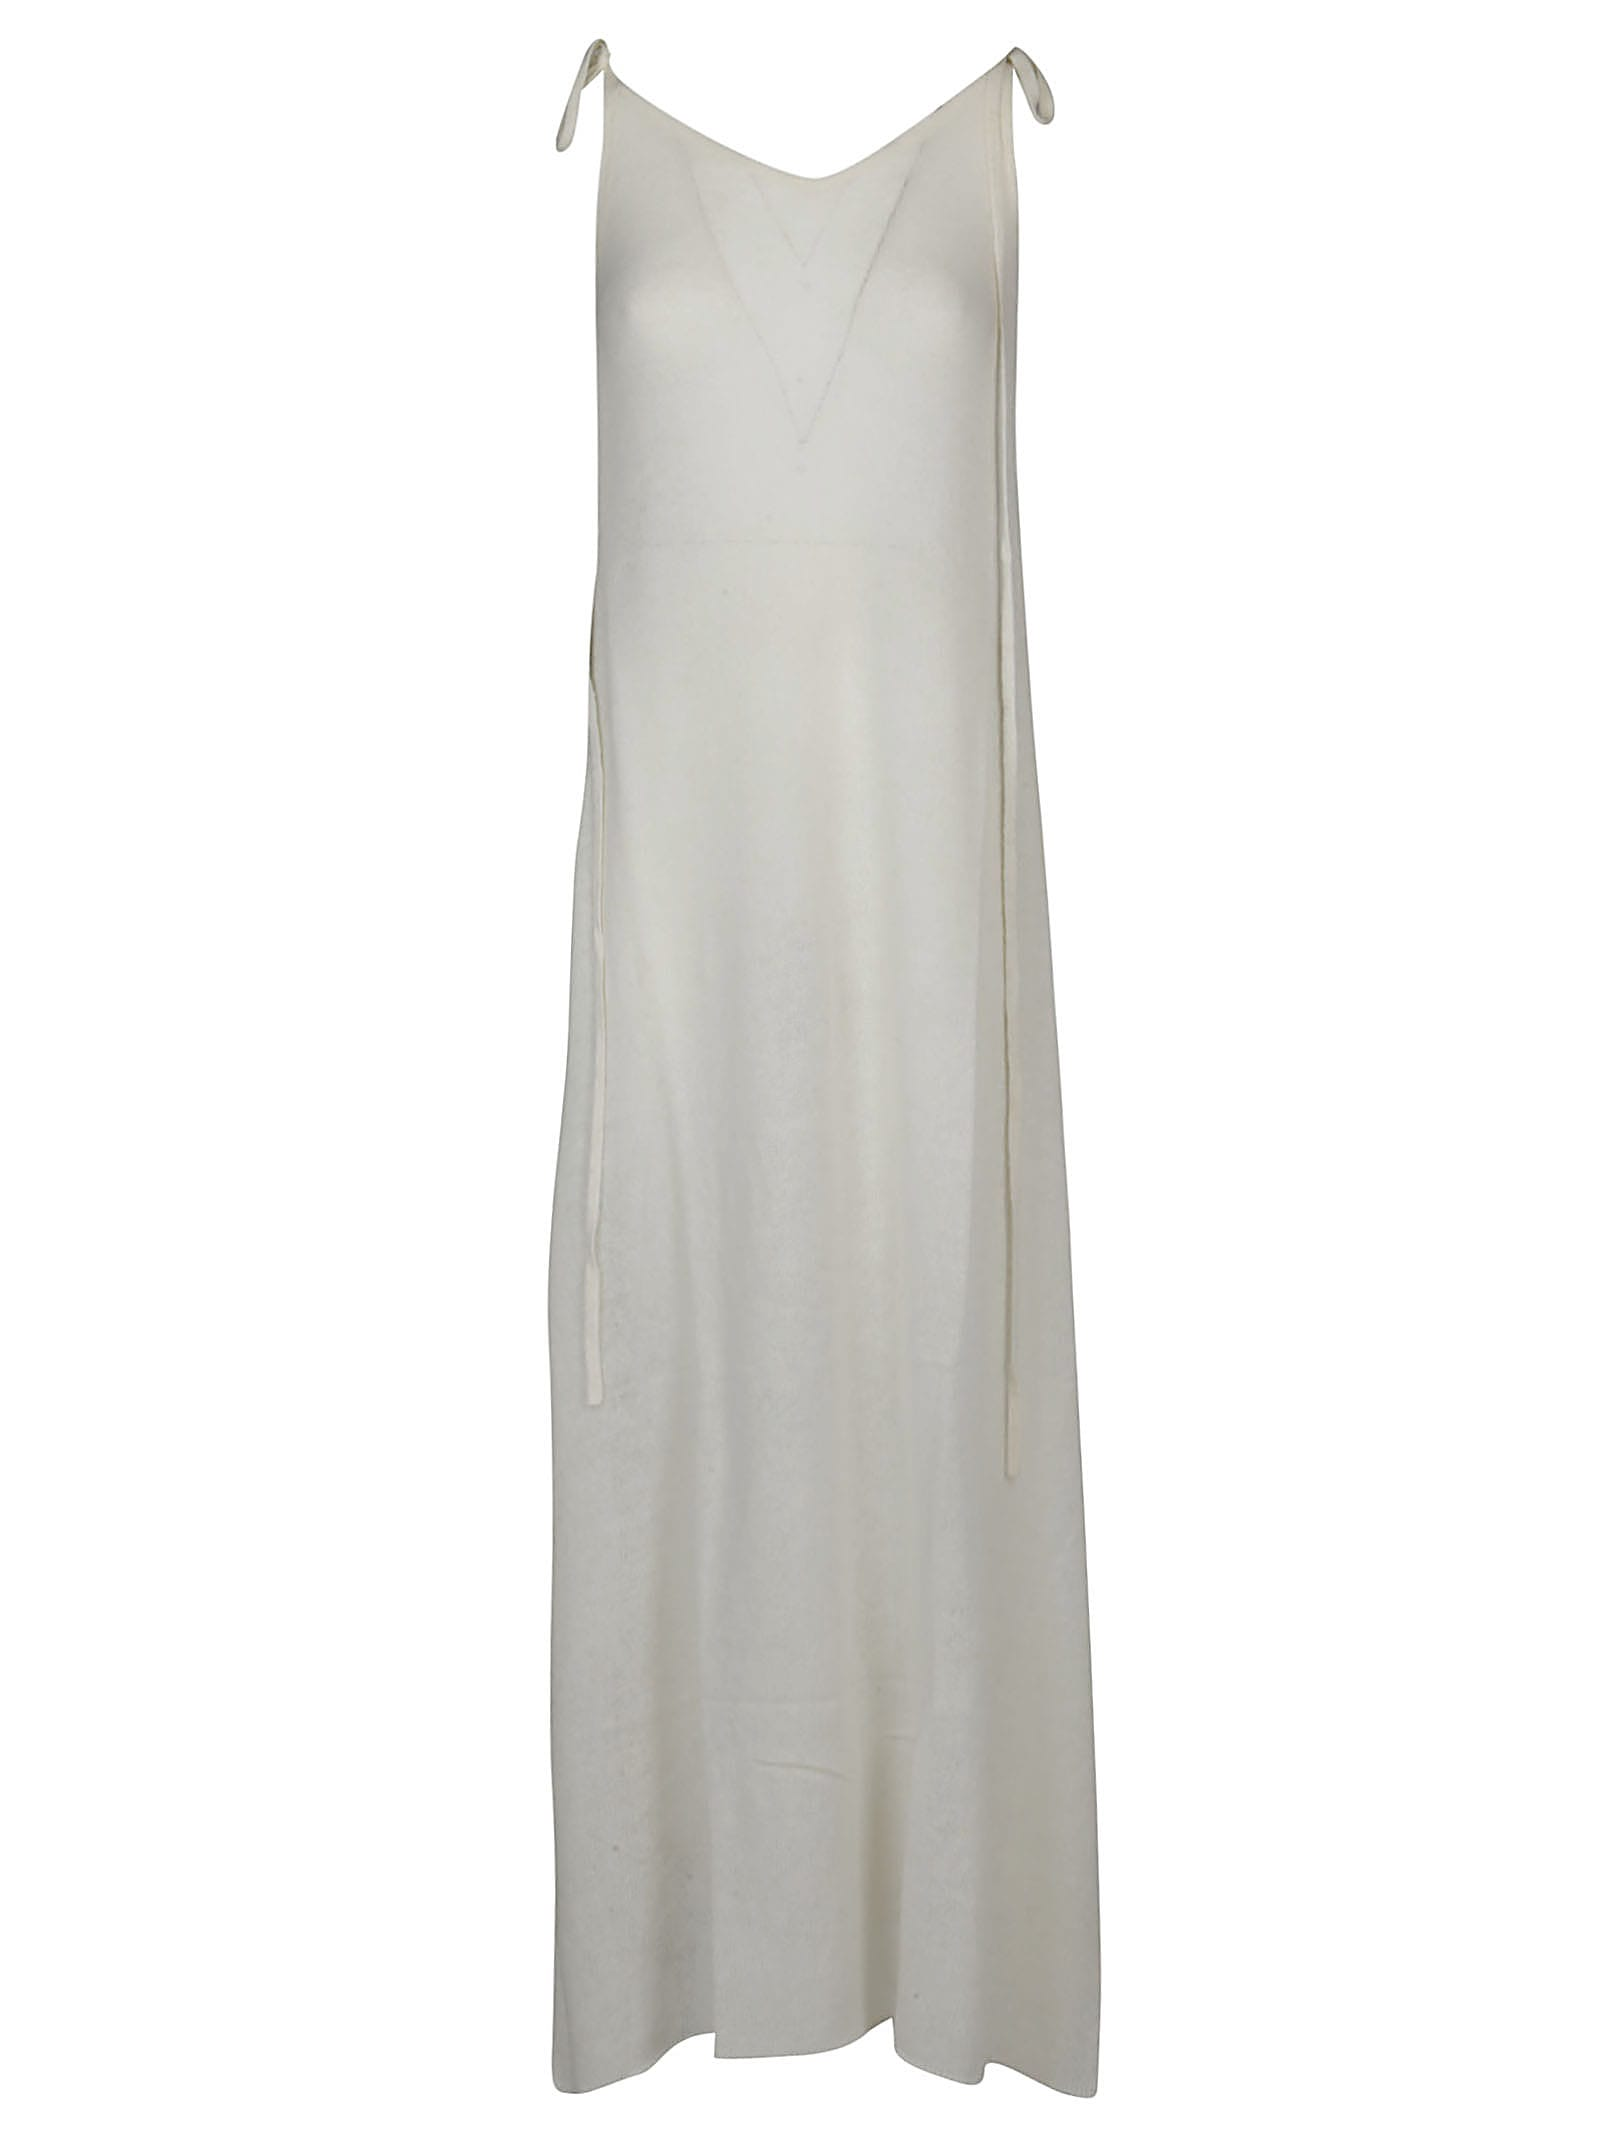 Alanui Etheral Knitted Slip Dress